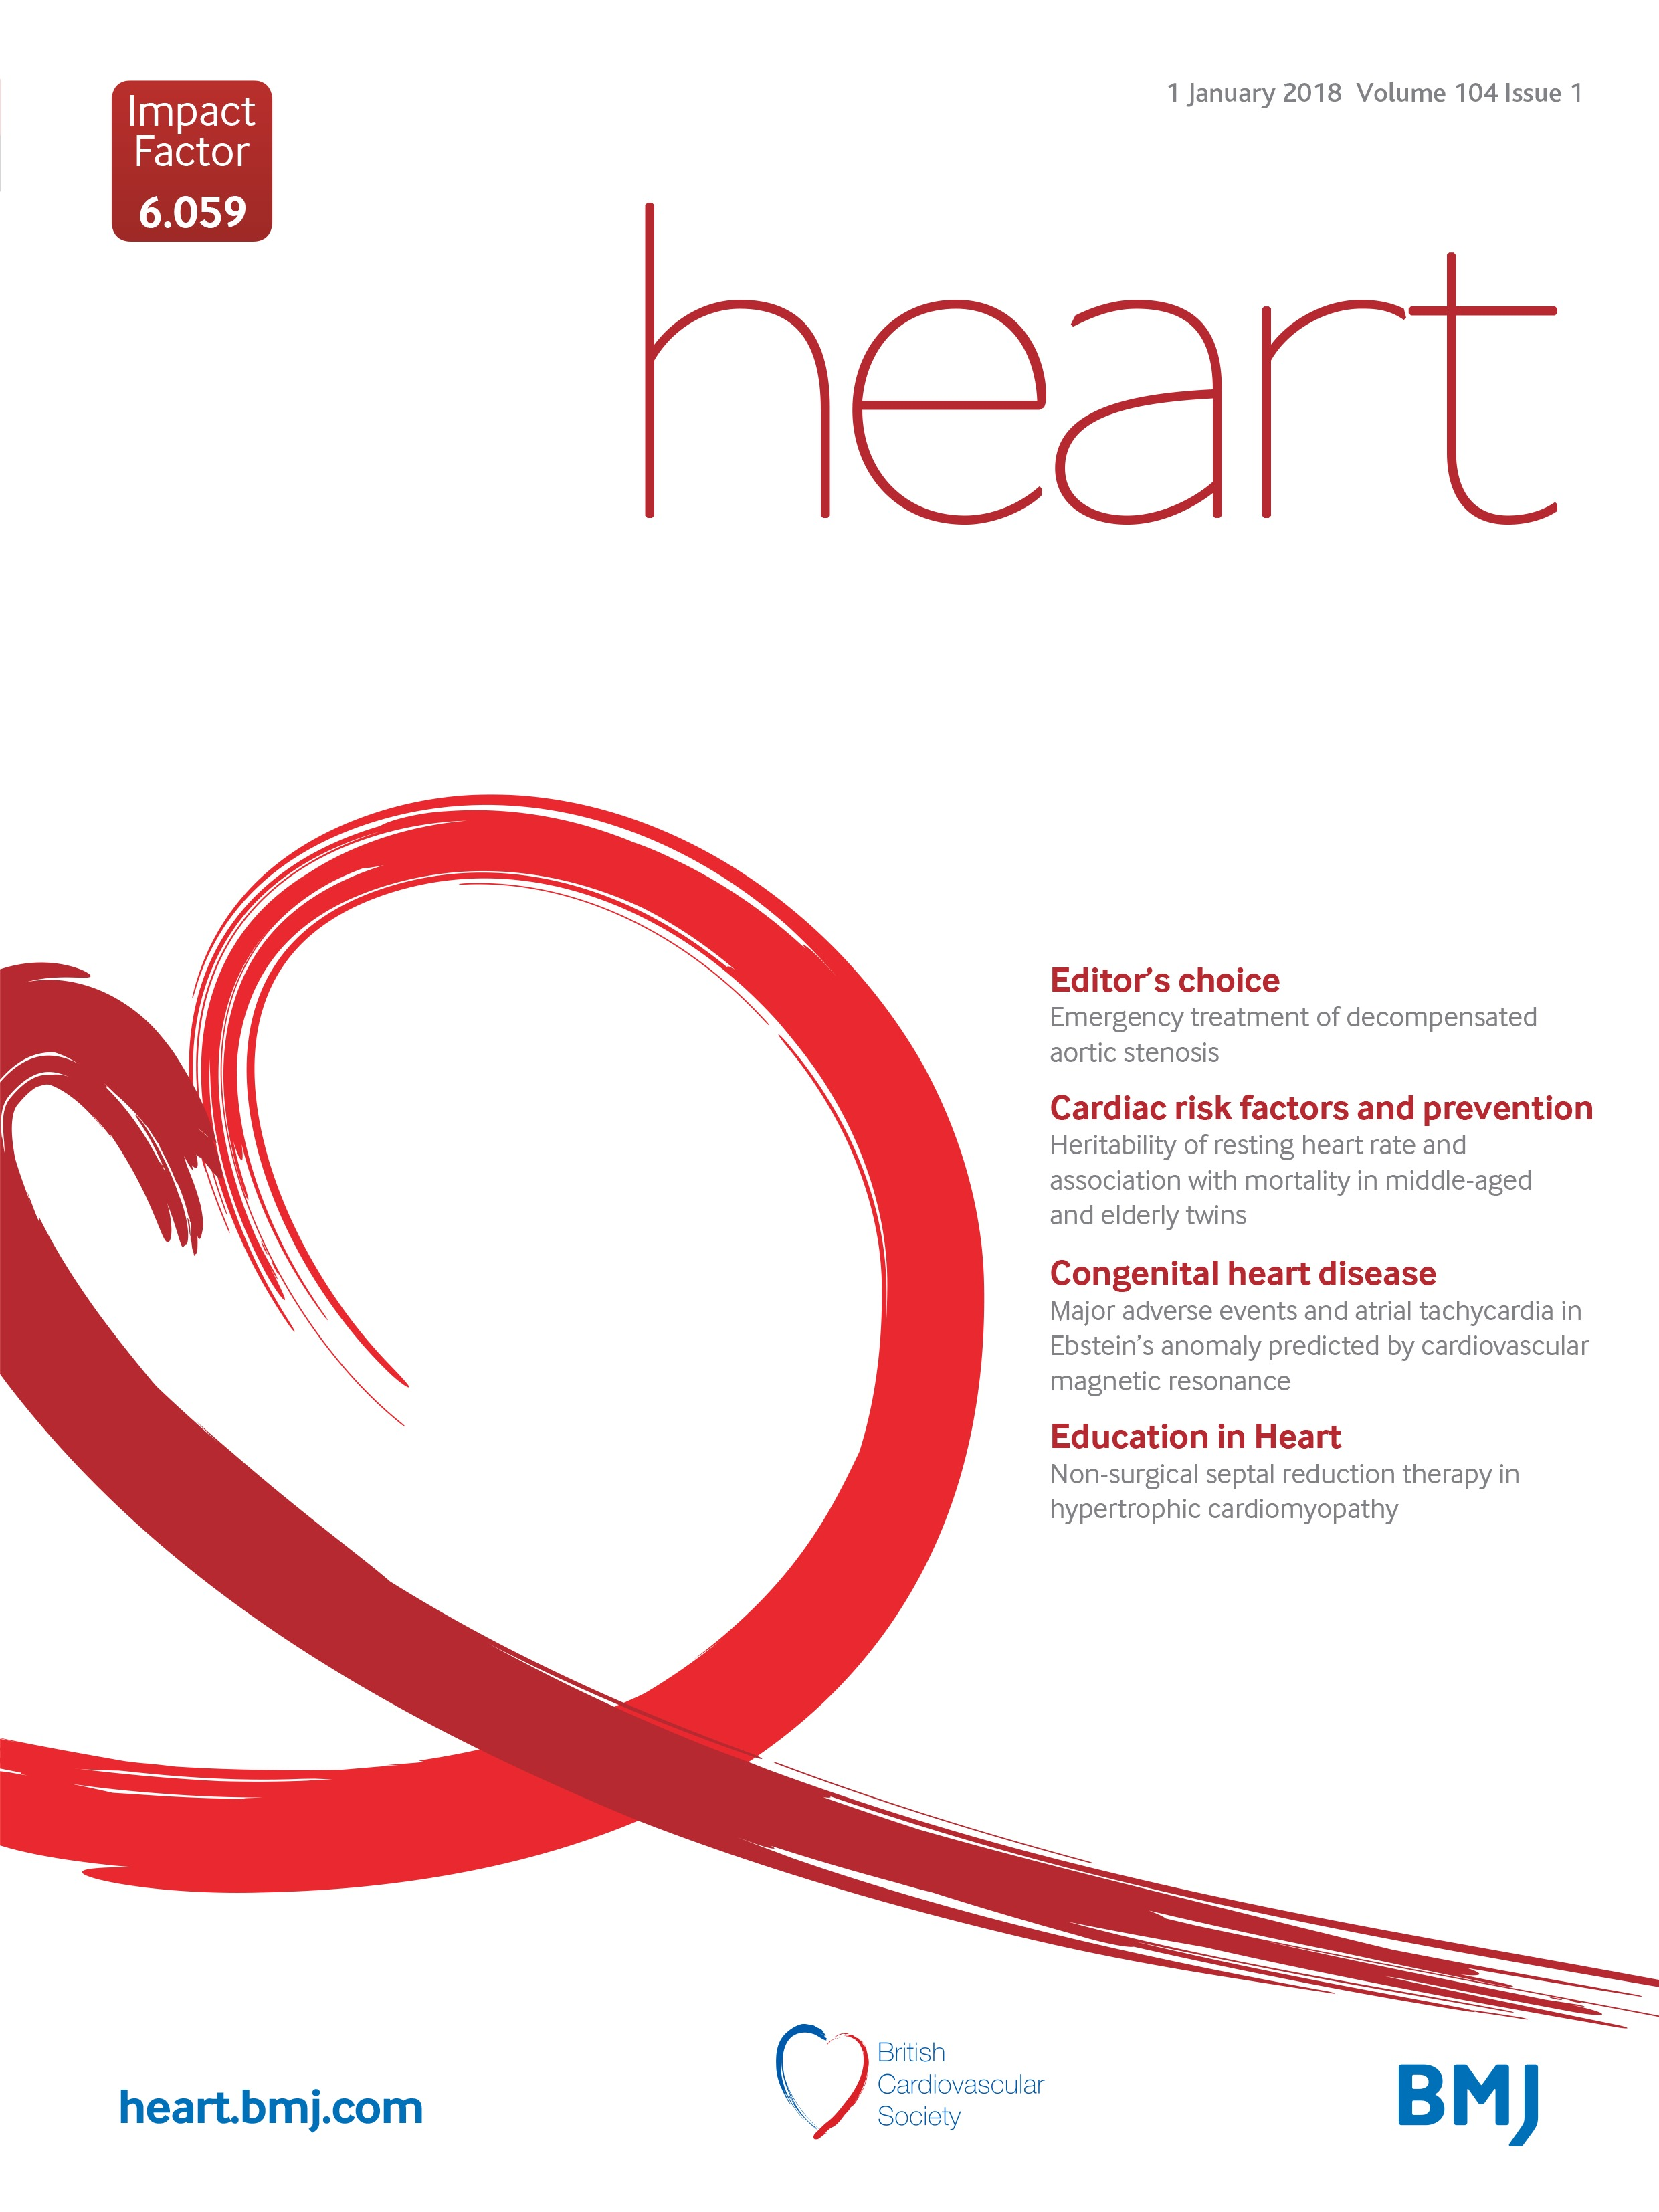 Ischaemic heart disease in the former Soviet Union 1990–2015